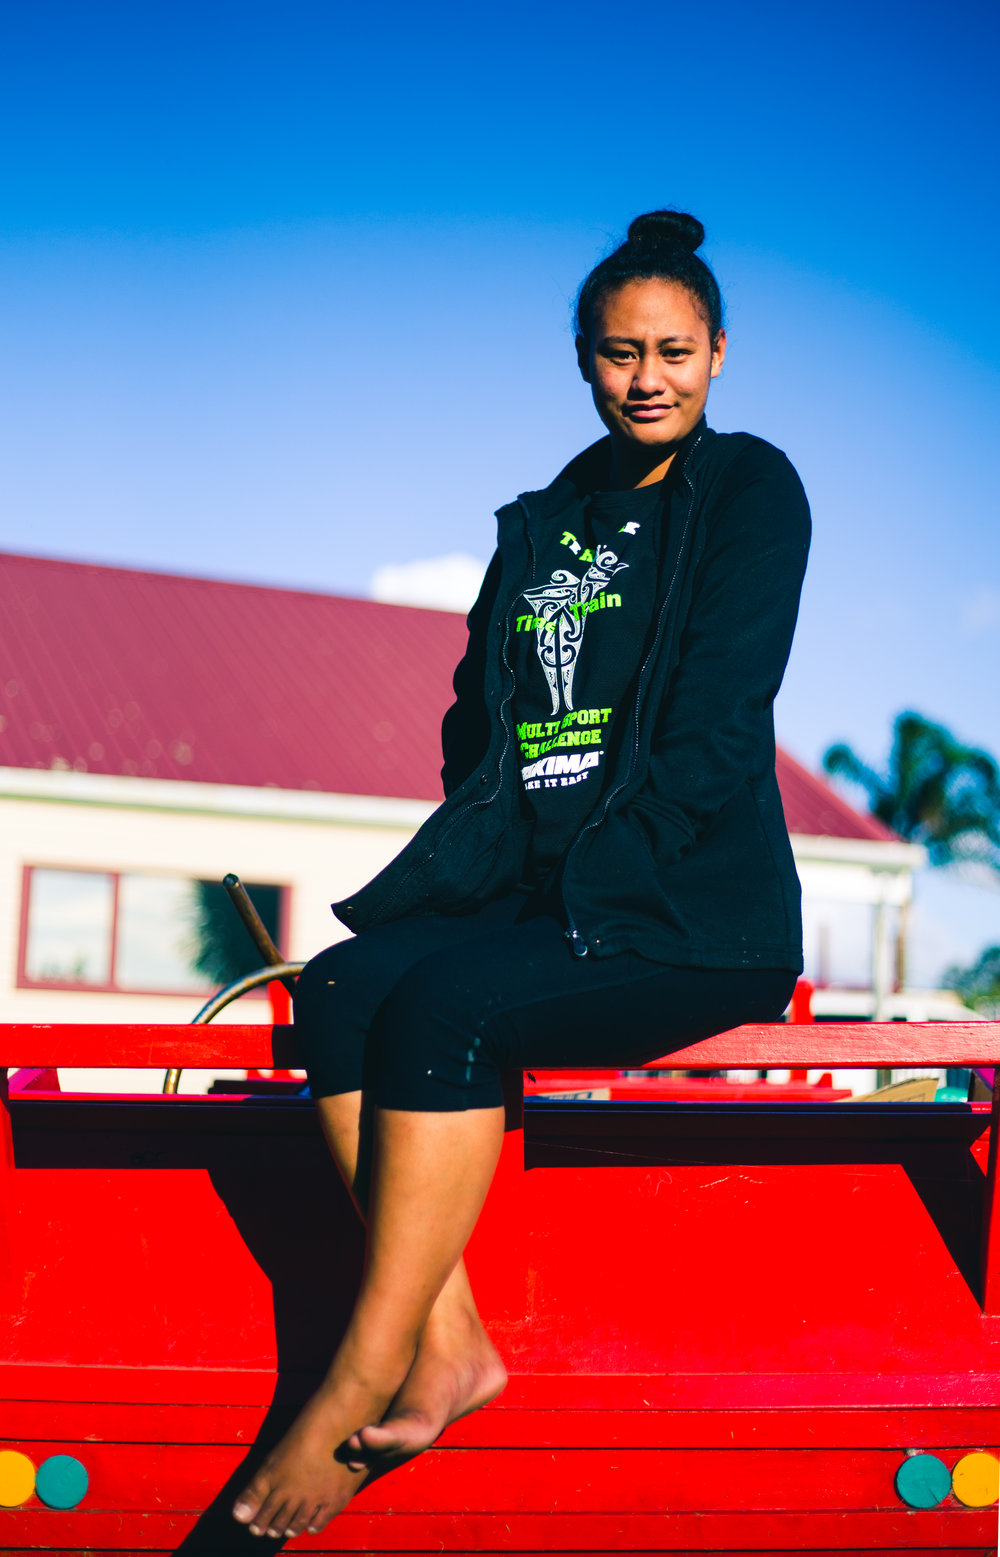 Rangipo Takuira-Mita - Tena koutou katoa. Ko Rangipo Takuira-Mita toku ingoa, he uri whakaheke tenei no Ngati Maniapoto raua ko Te Arawa tenei. This year I am currently a student who attends Te Wharekura o Manurewa and also a year 12 I am also one of the students who have recently completed the Mana Tangata programme long side of OMG Tech, I was also a student who came to the Mana Tangata programme not holding any knowledge of Technology. Through out the programme I have gained more skills in the area of Technology with in computer skills, and also app design I've made a whole new family and made life long friends with people you wouldn't usually see me with and memories that will never fade.